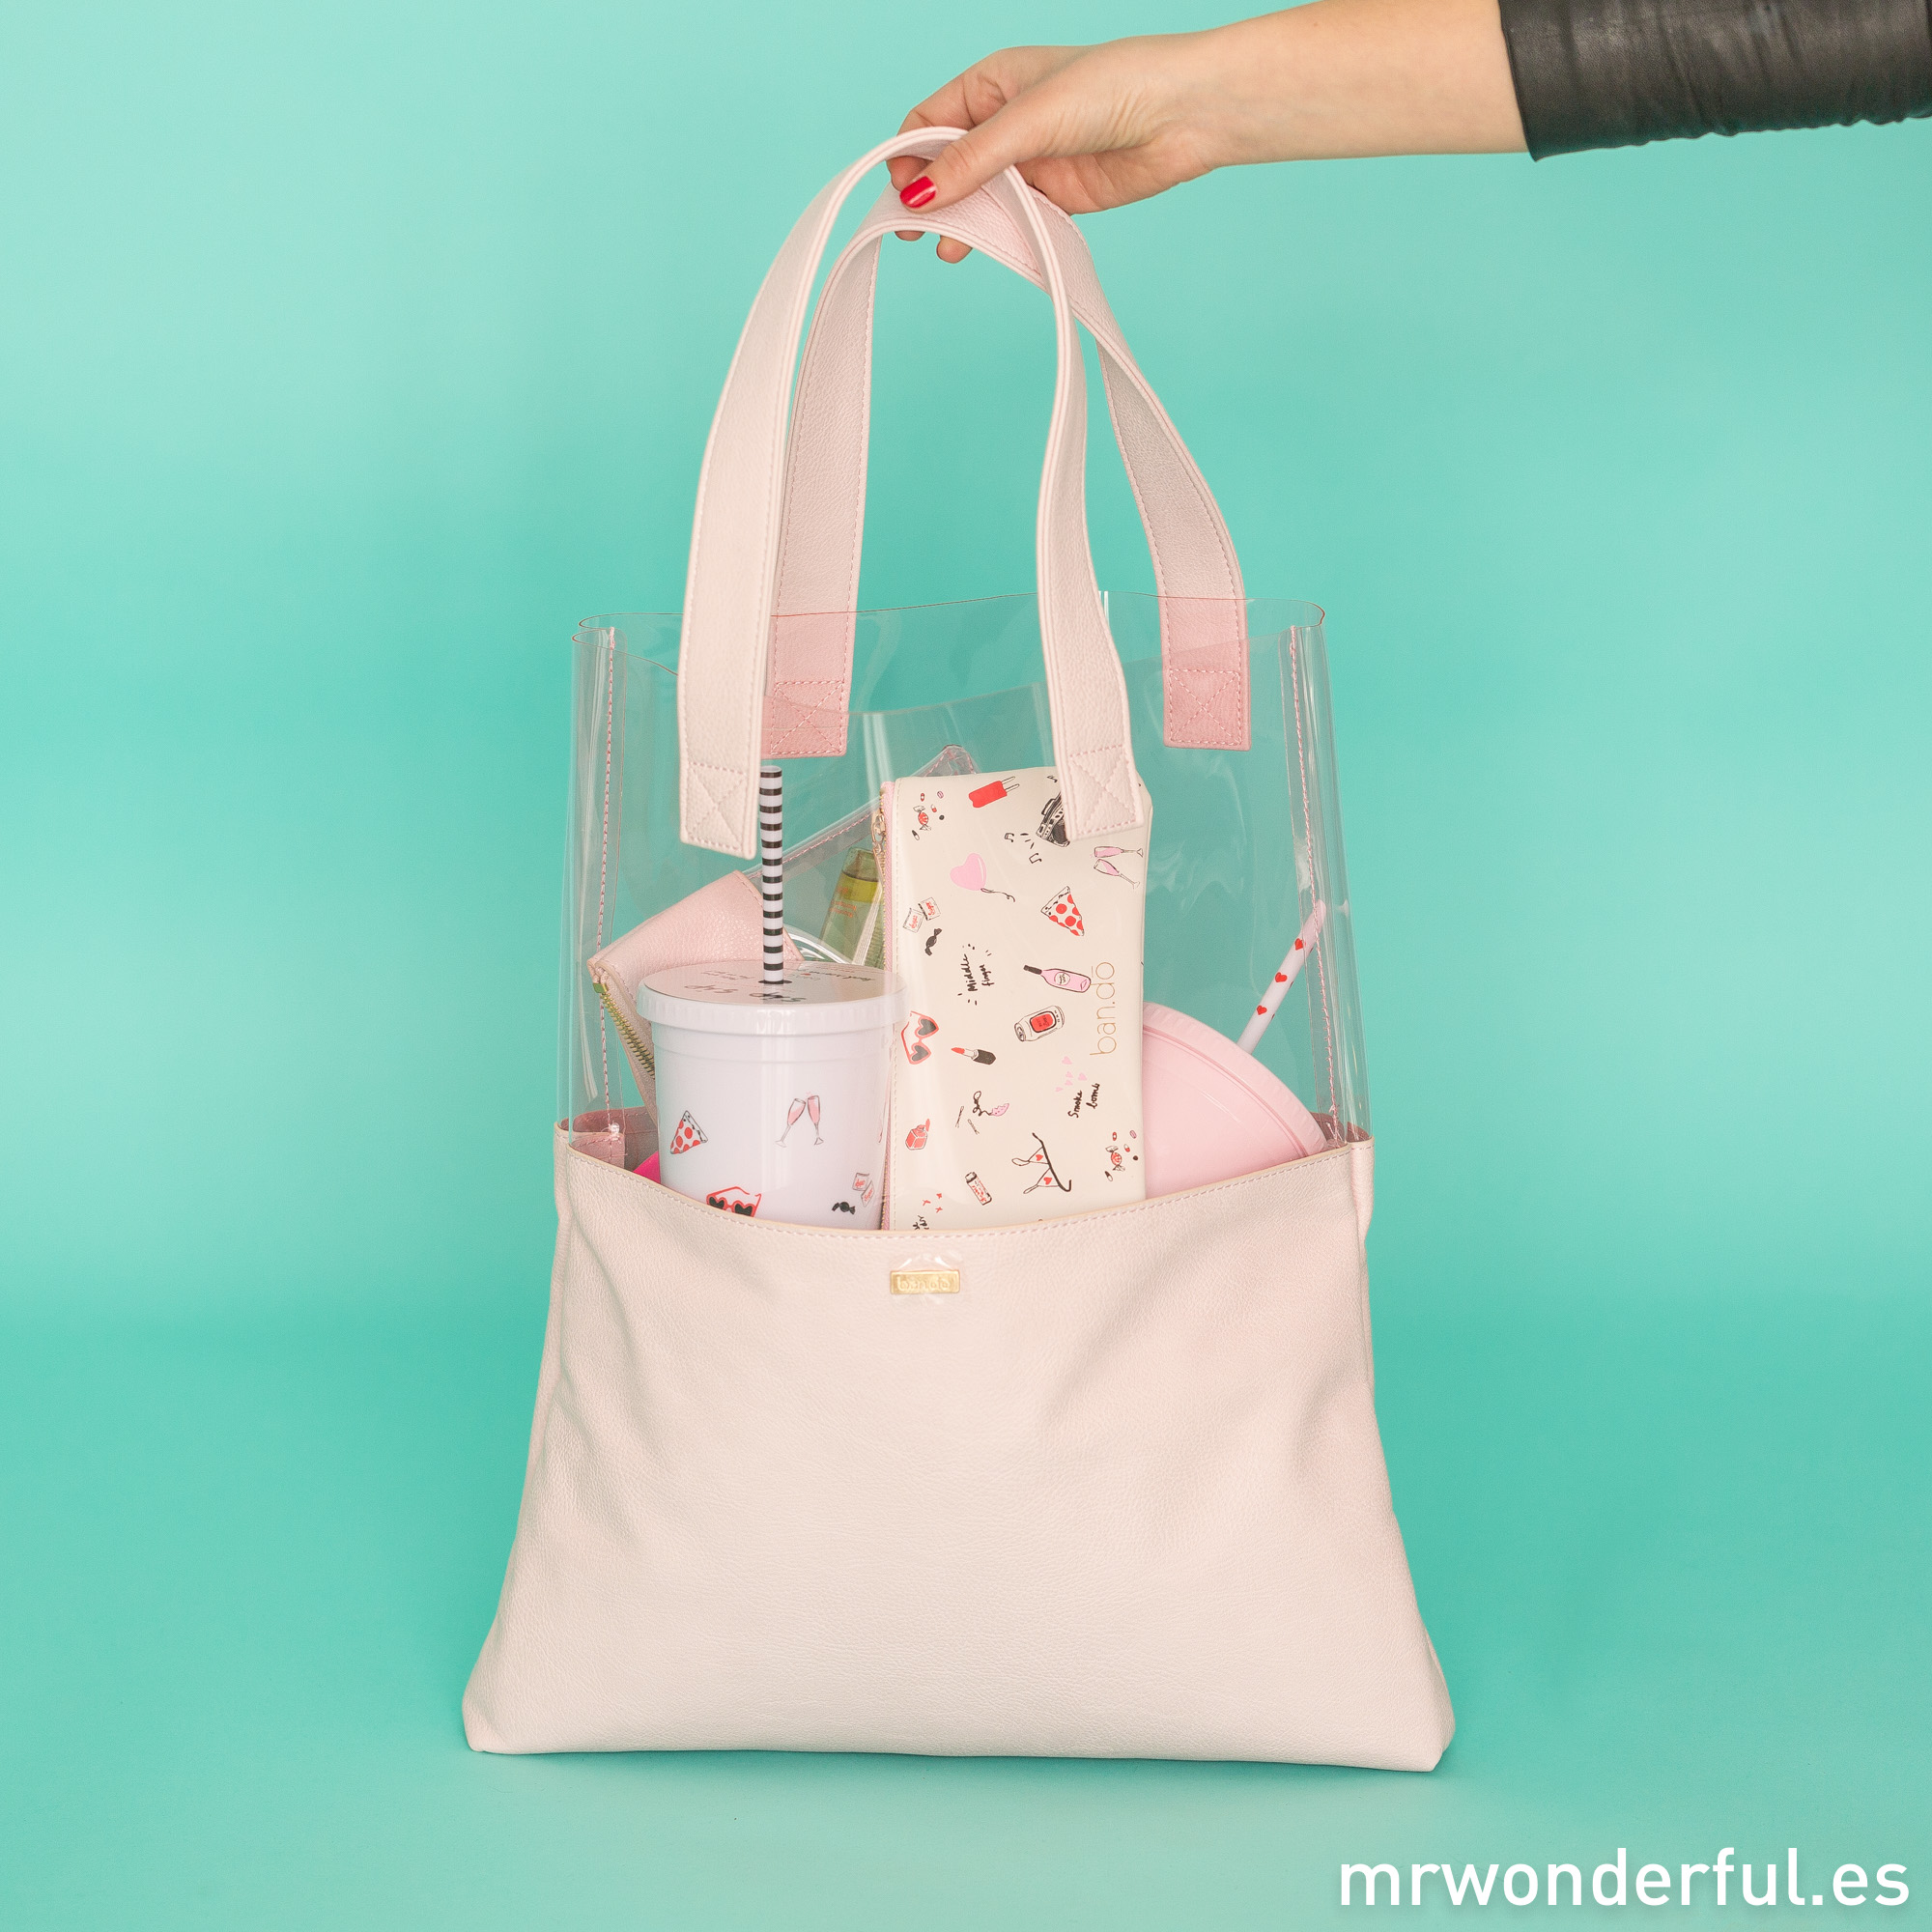 mrwonderful_PRA02807_Bolso-shopper-de-color-rosa-Boo-10